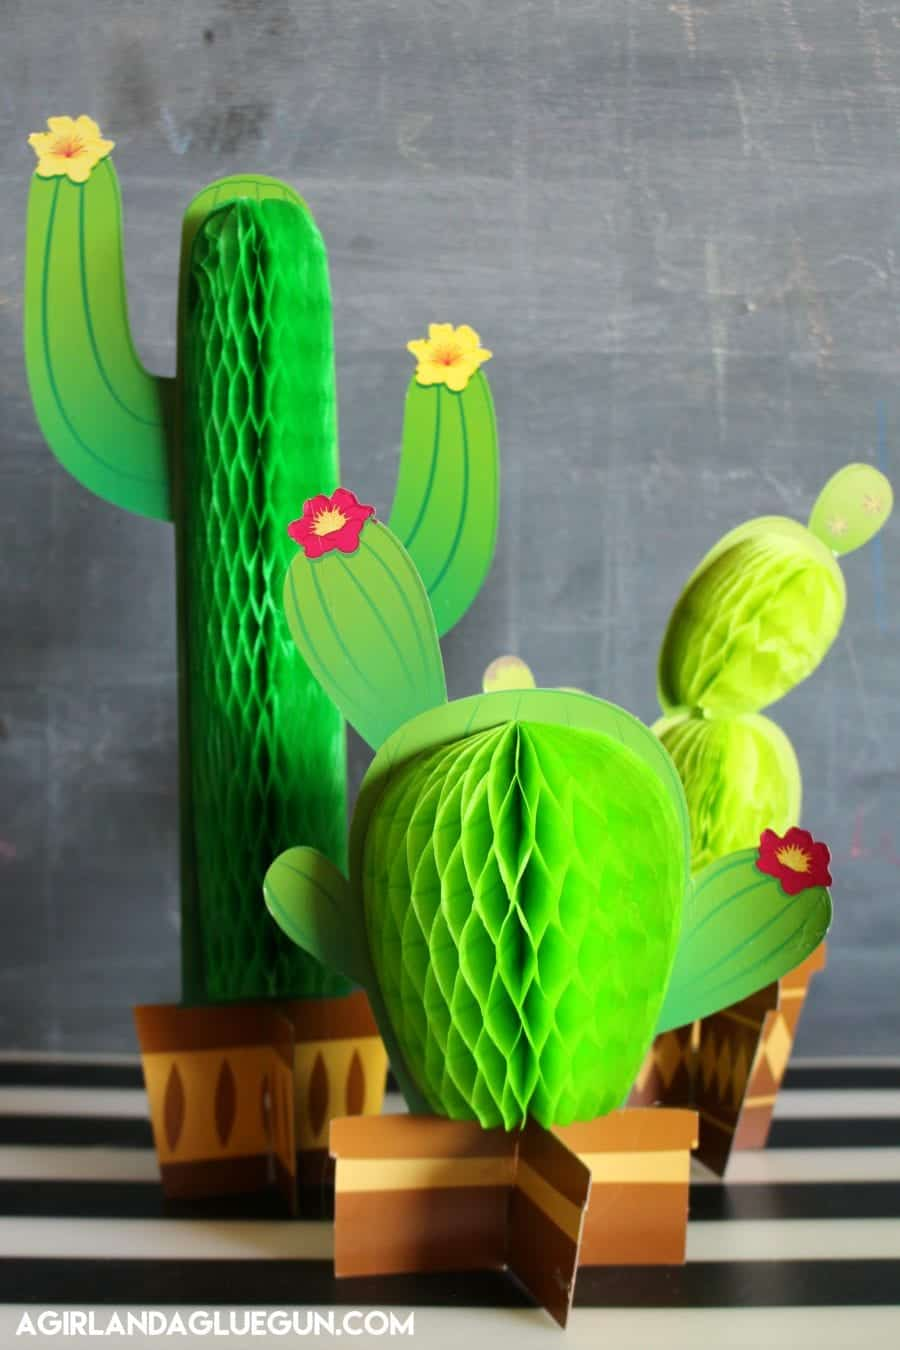 Cactus Diy Roundup  A girl and a glue gun